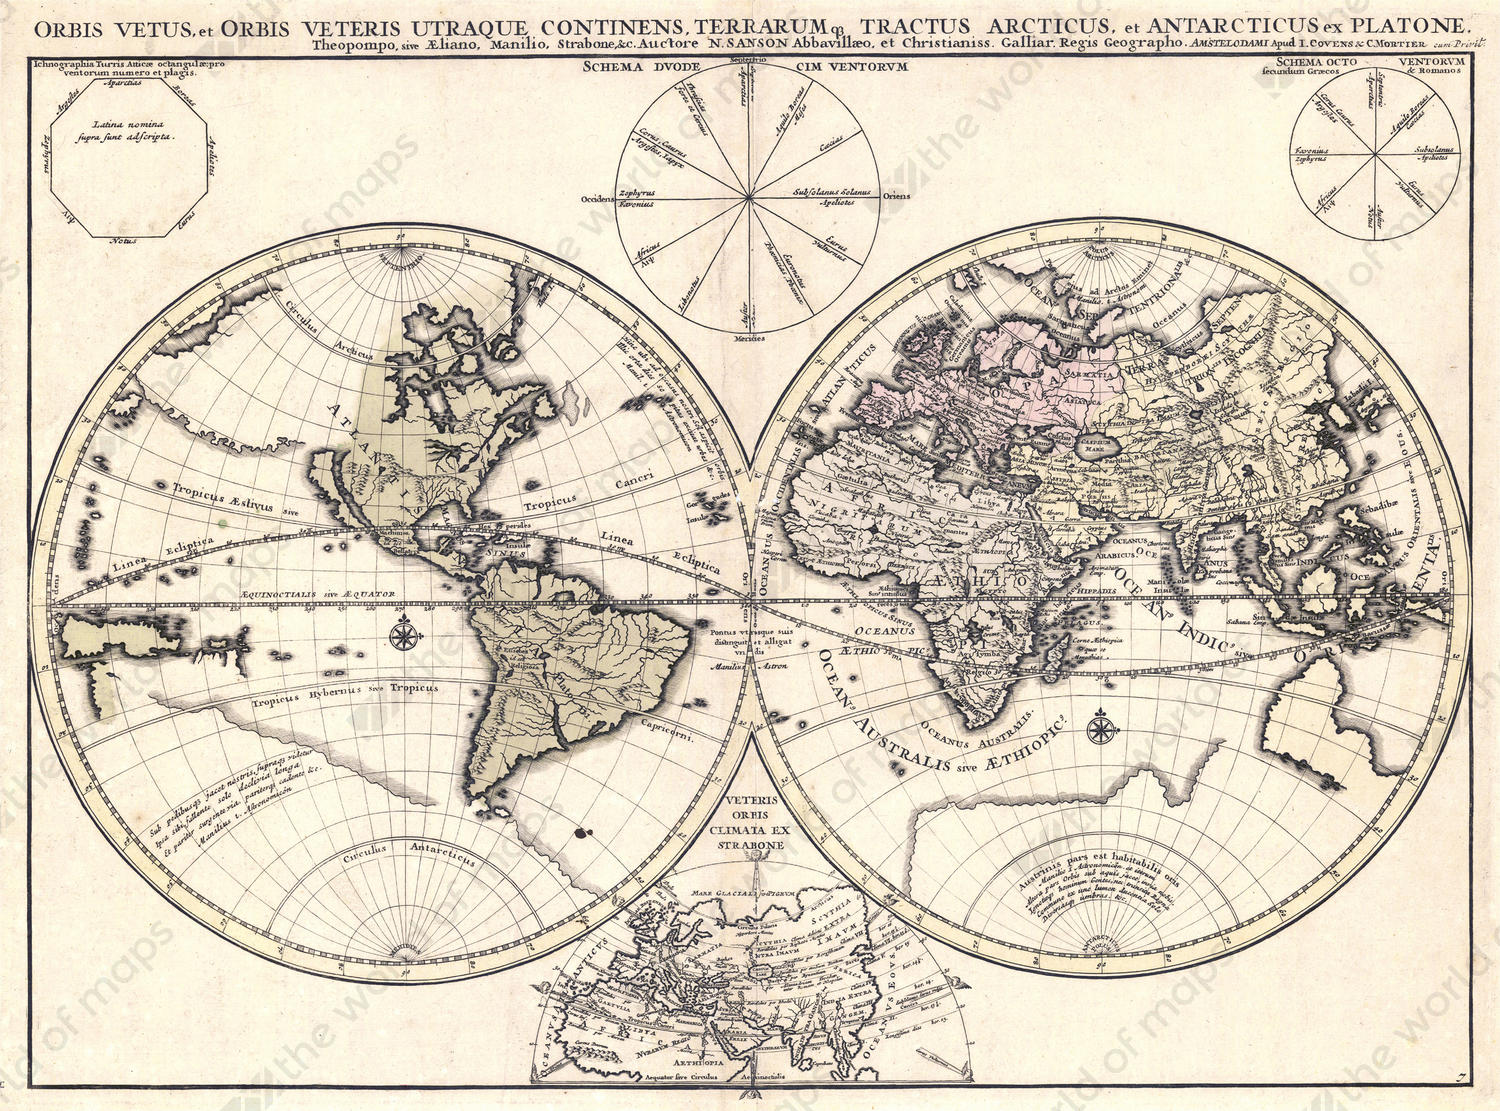 Digital world map year 1684 nicolas sanson the world of maps digital world map year 1684 nicolas sanson gumiabroncs Image collections